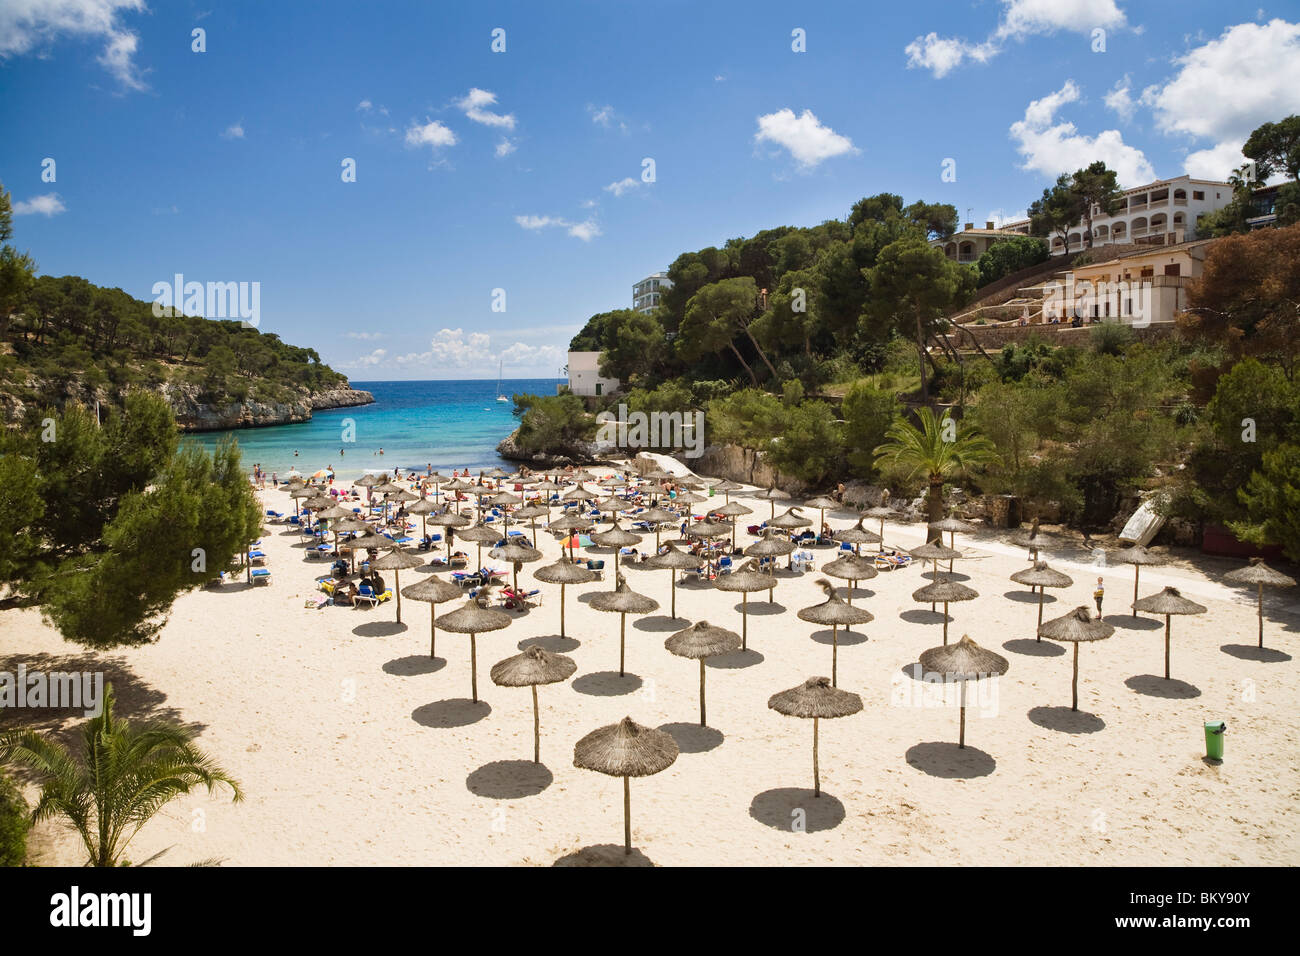 Sandy beach with sunshades at the bay of Cala Santanyi, Mallorca, Balearic Islands, Spain, Europe - Stock Image